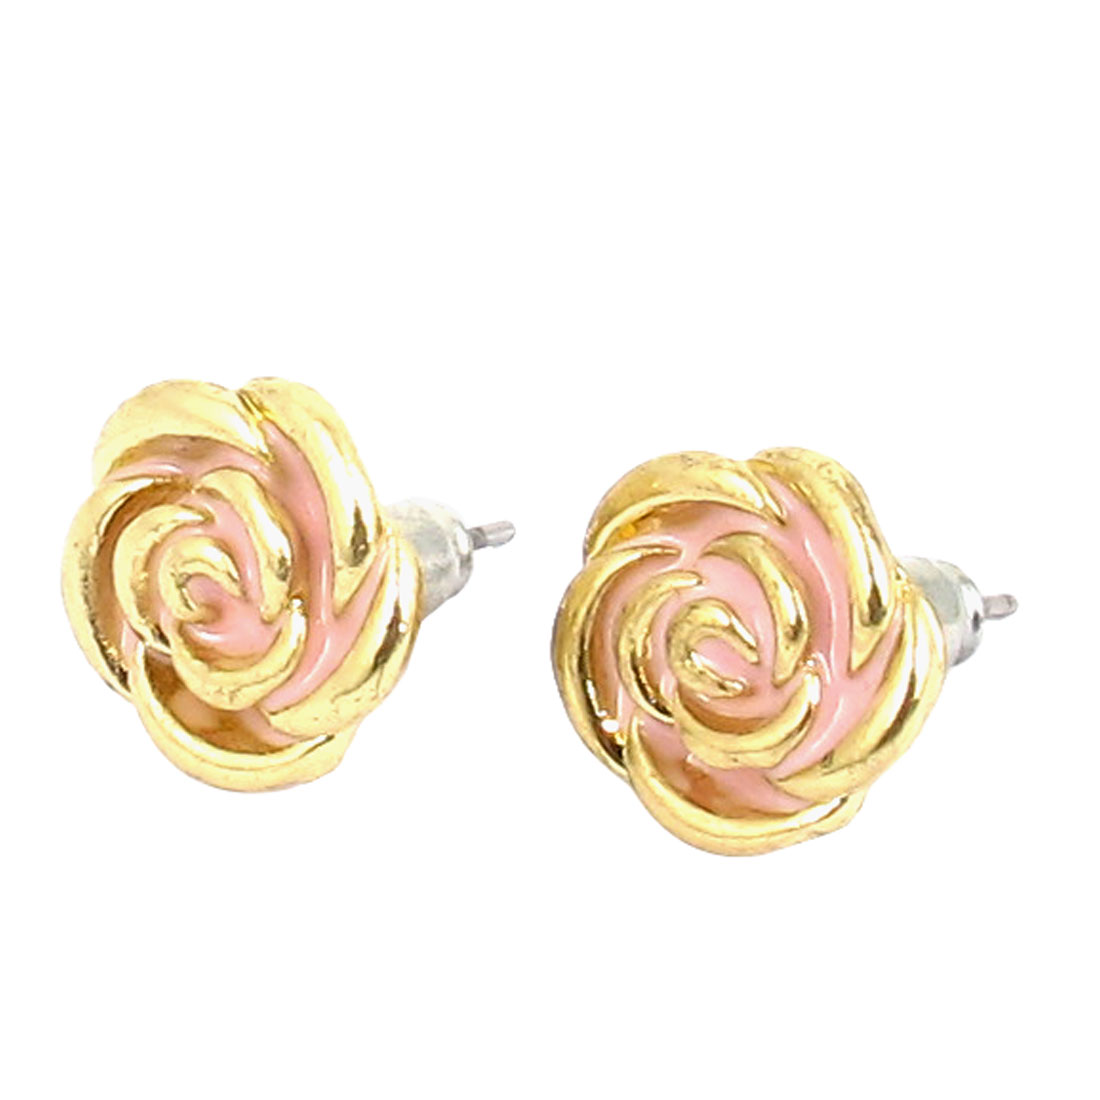 Women Metal Flower Shape Pierced Stud Pin Ear Nail Earrings Earbobs Gold Tone Pink 1.6CM Length Pair